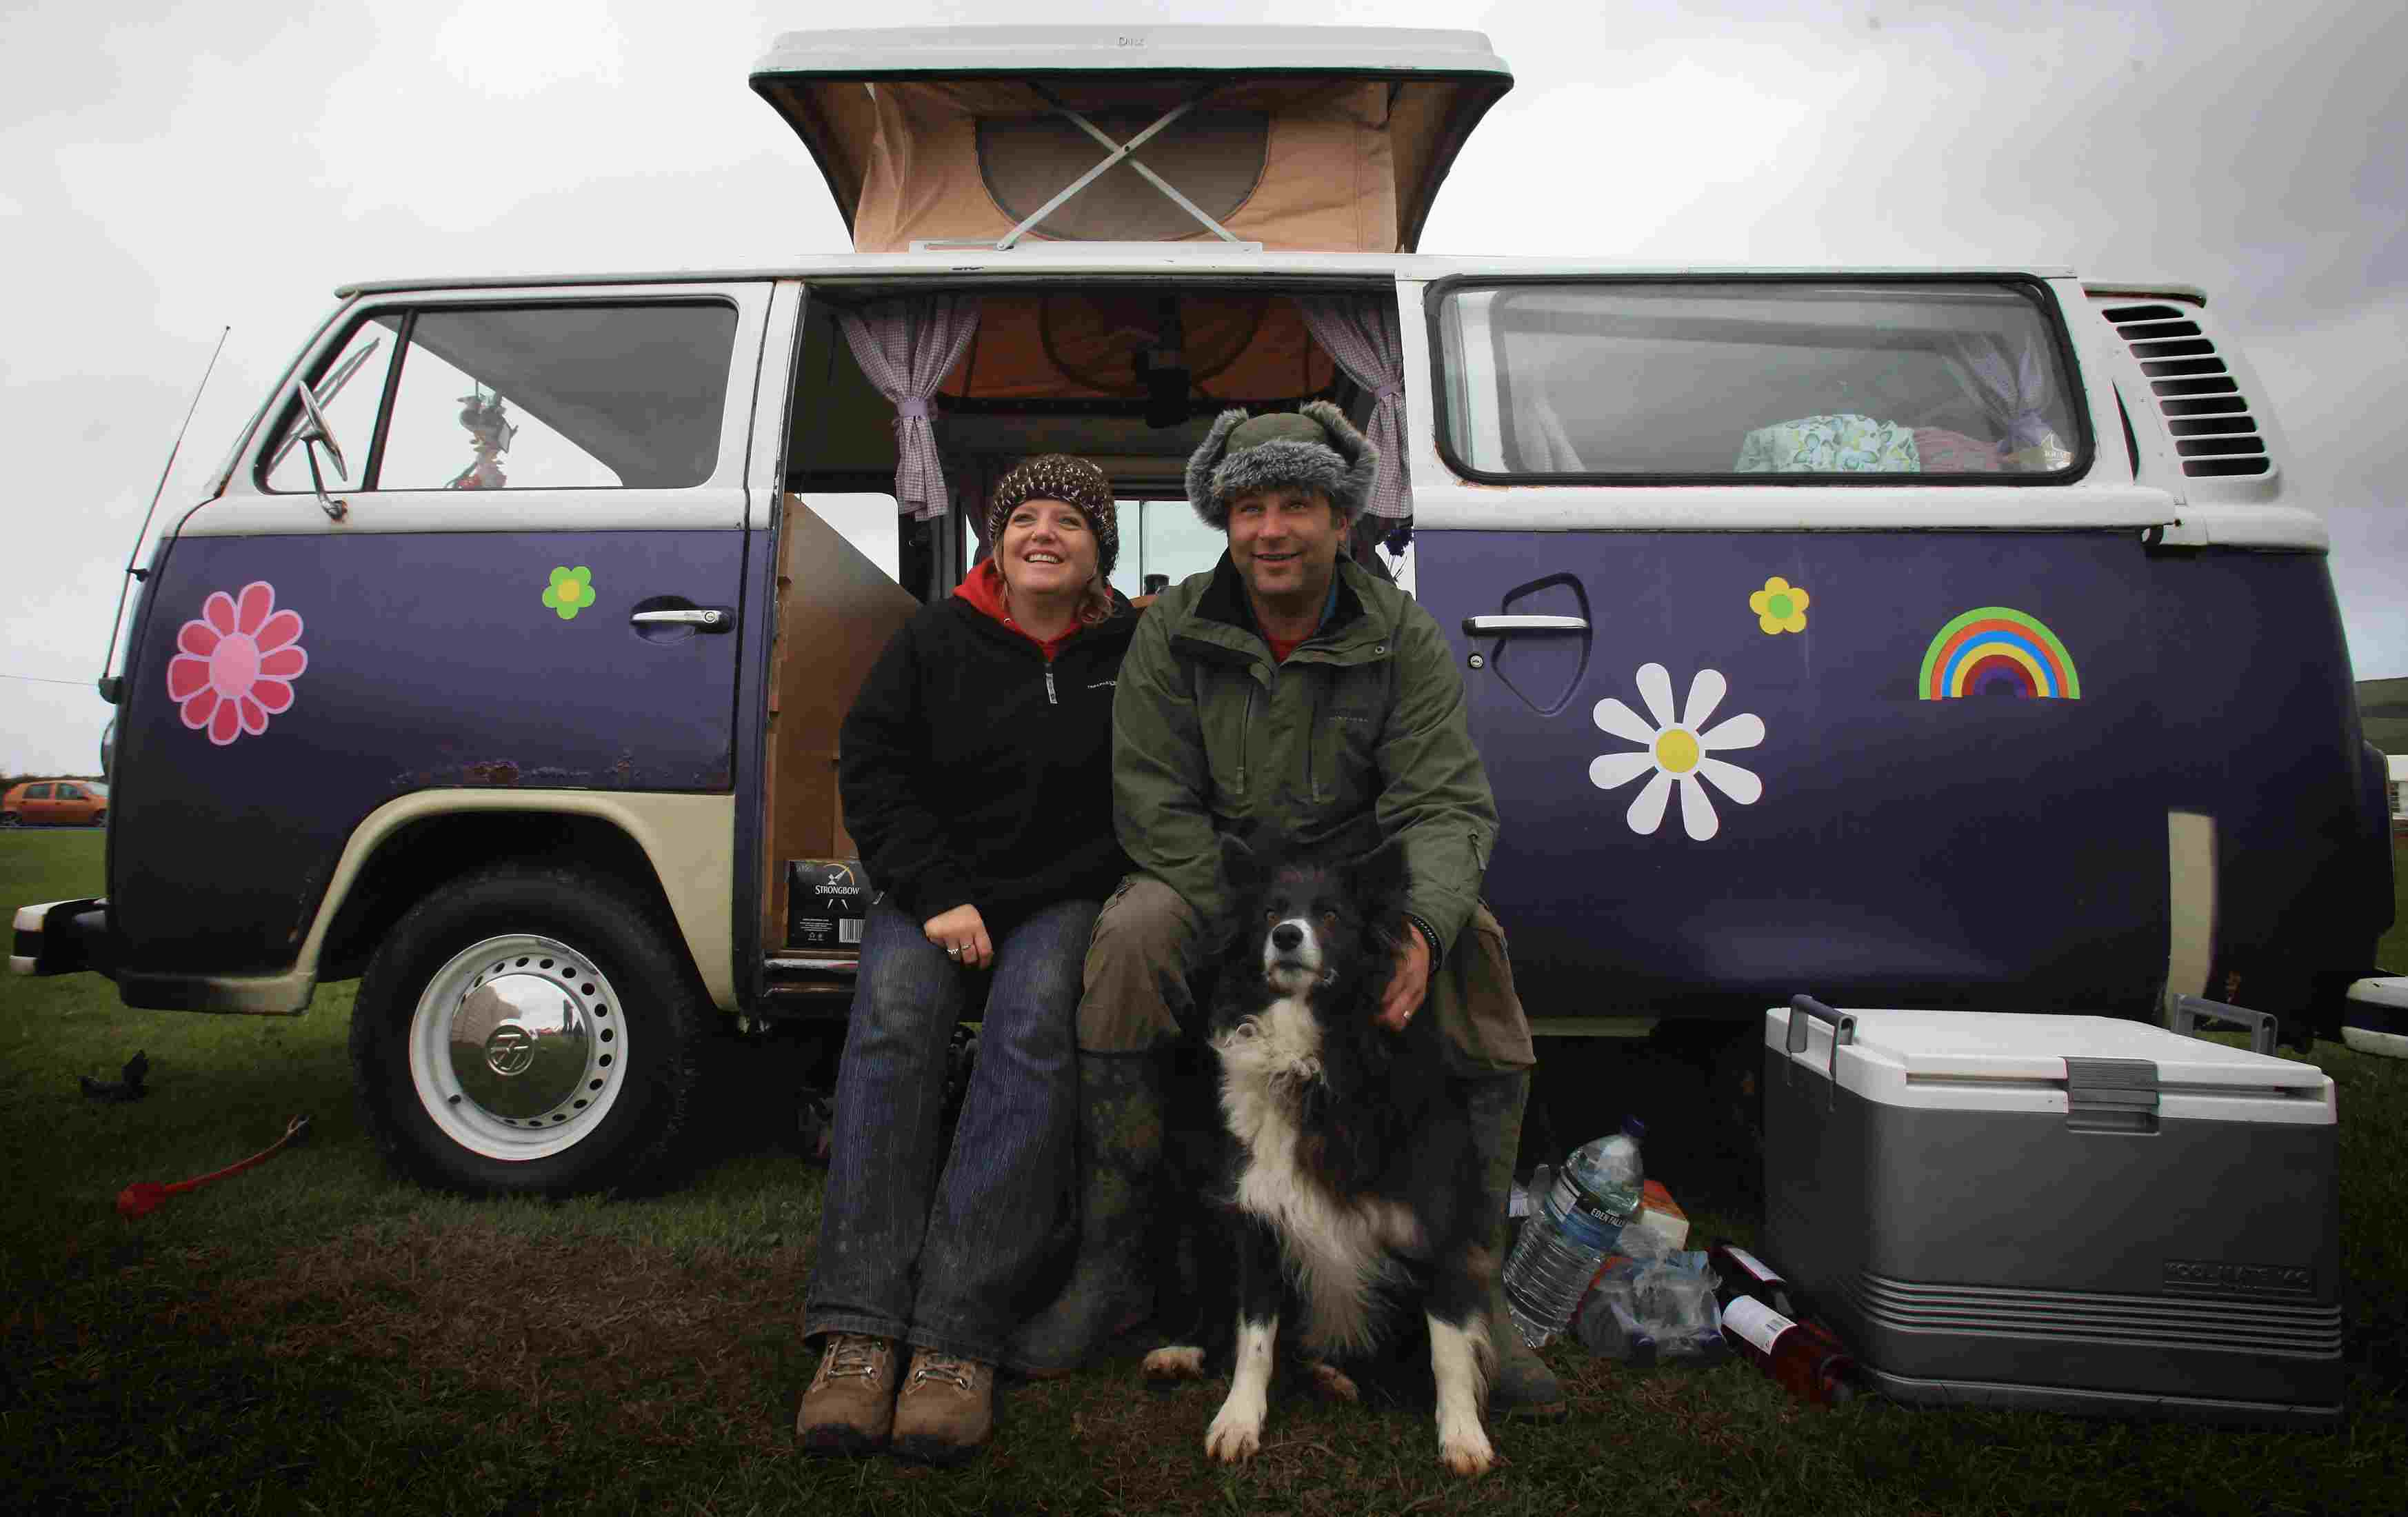 RVing with our best friend